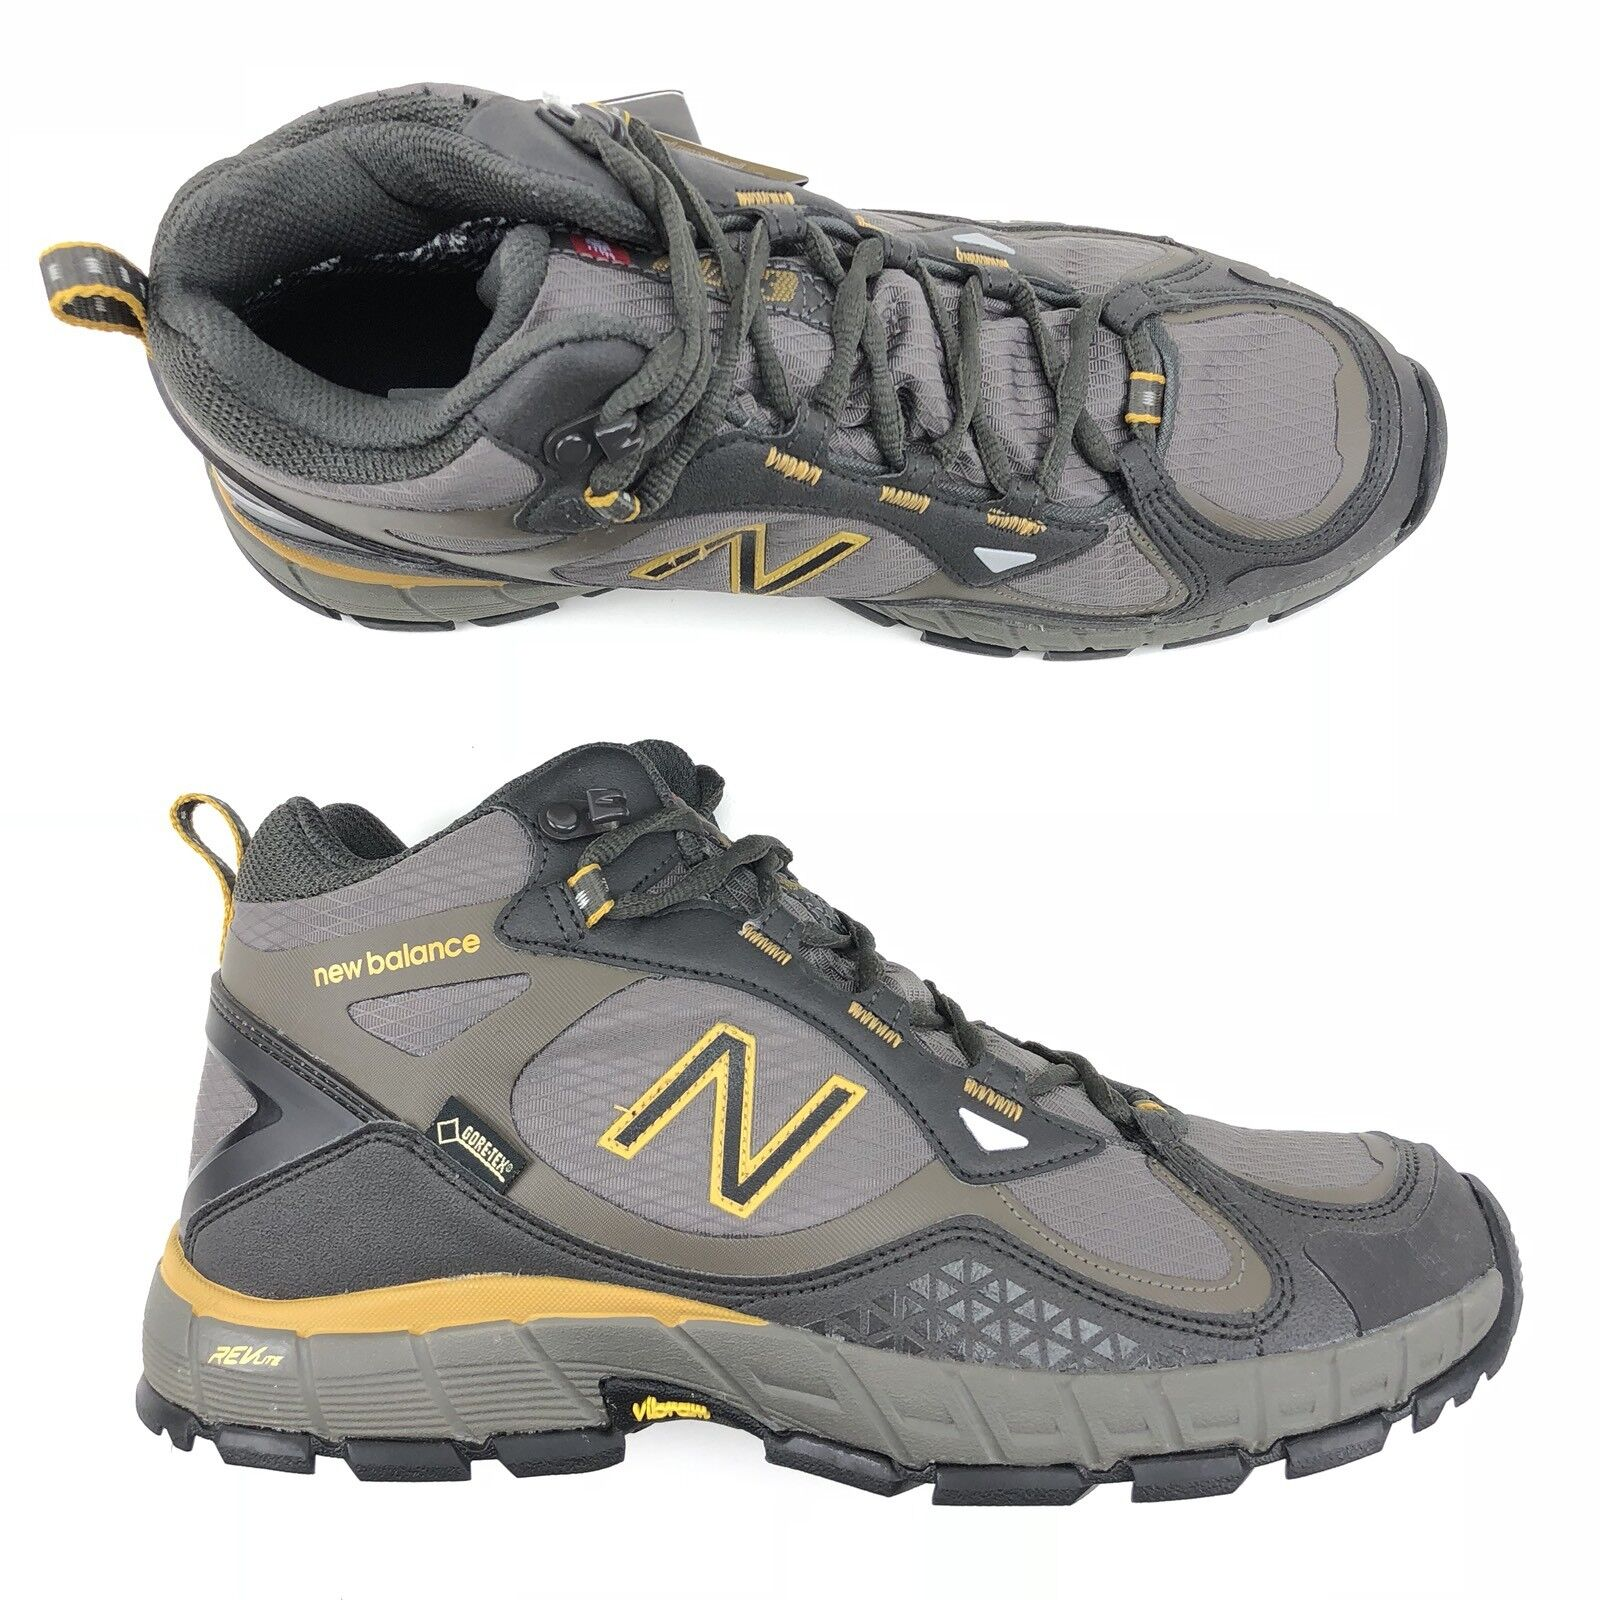 New Balance 703 Hiking Boot GoreTex Vibram Walking Shoe MO703HGT Uomo Size 10 D